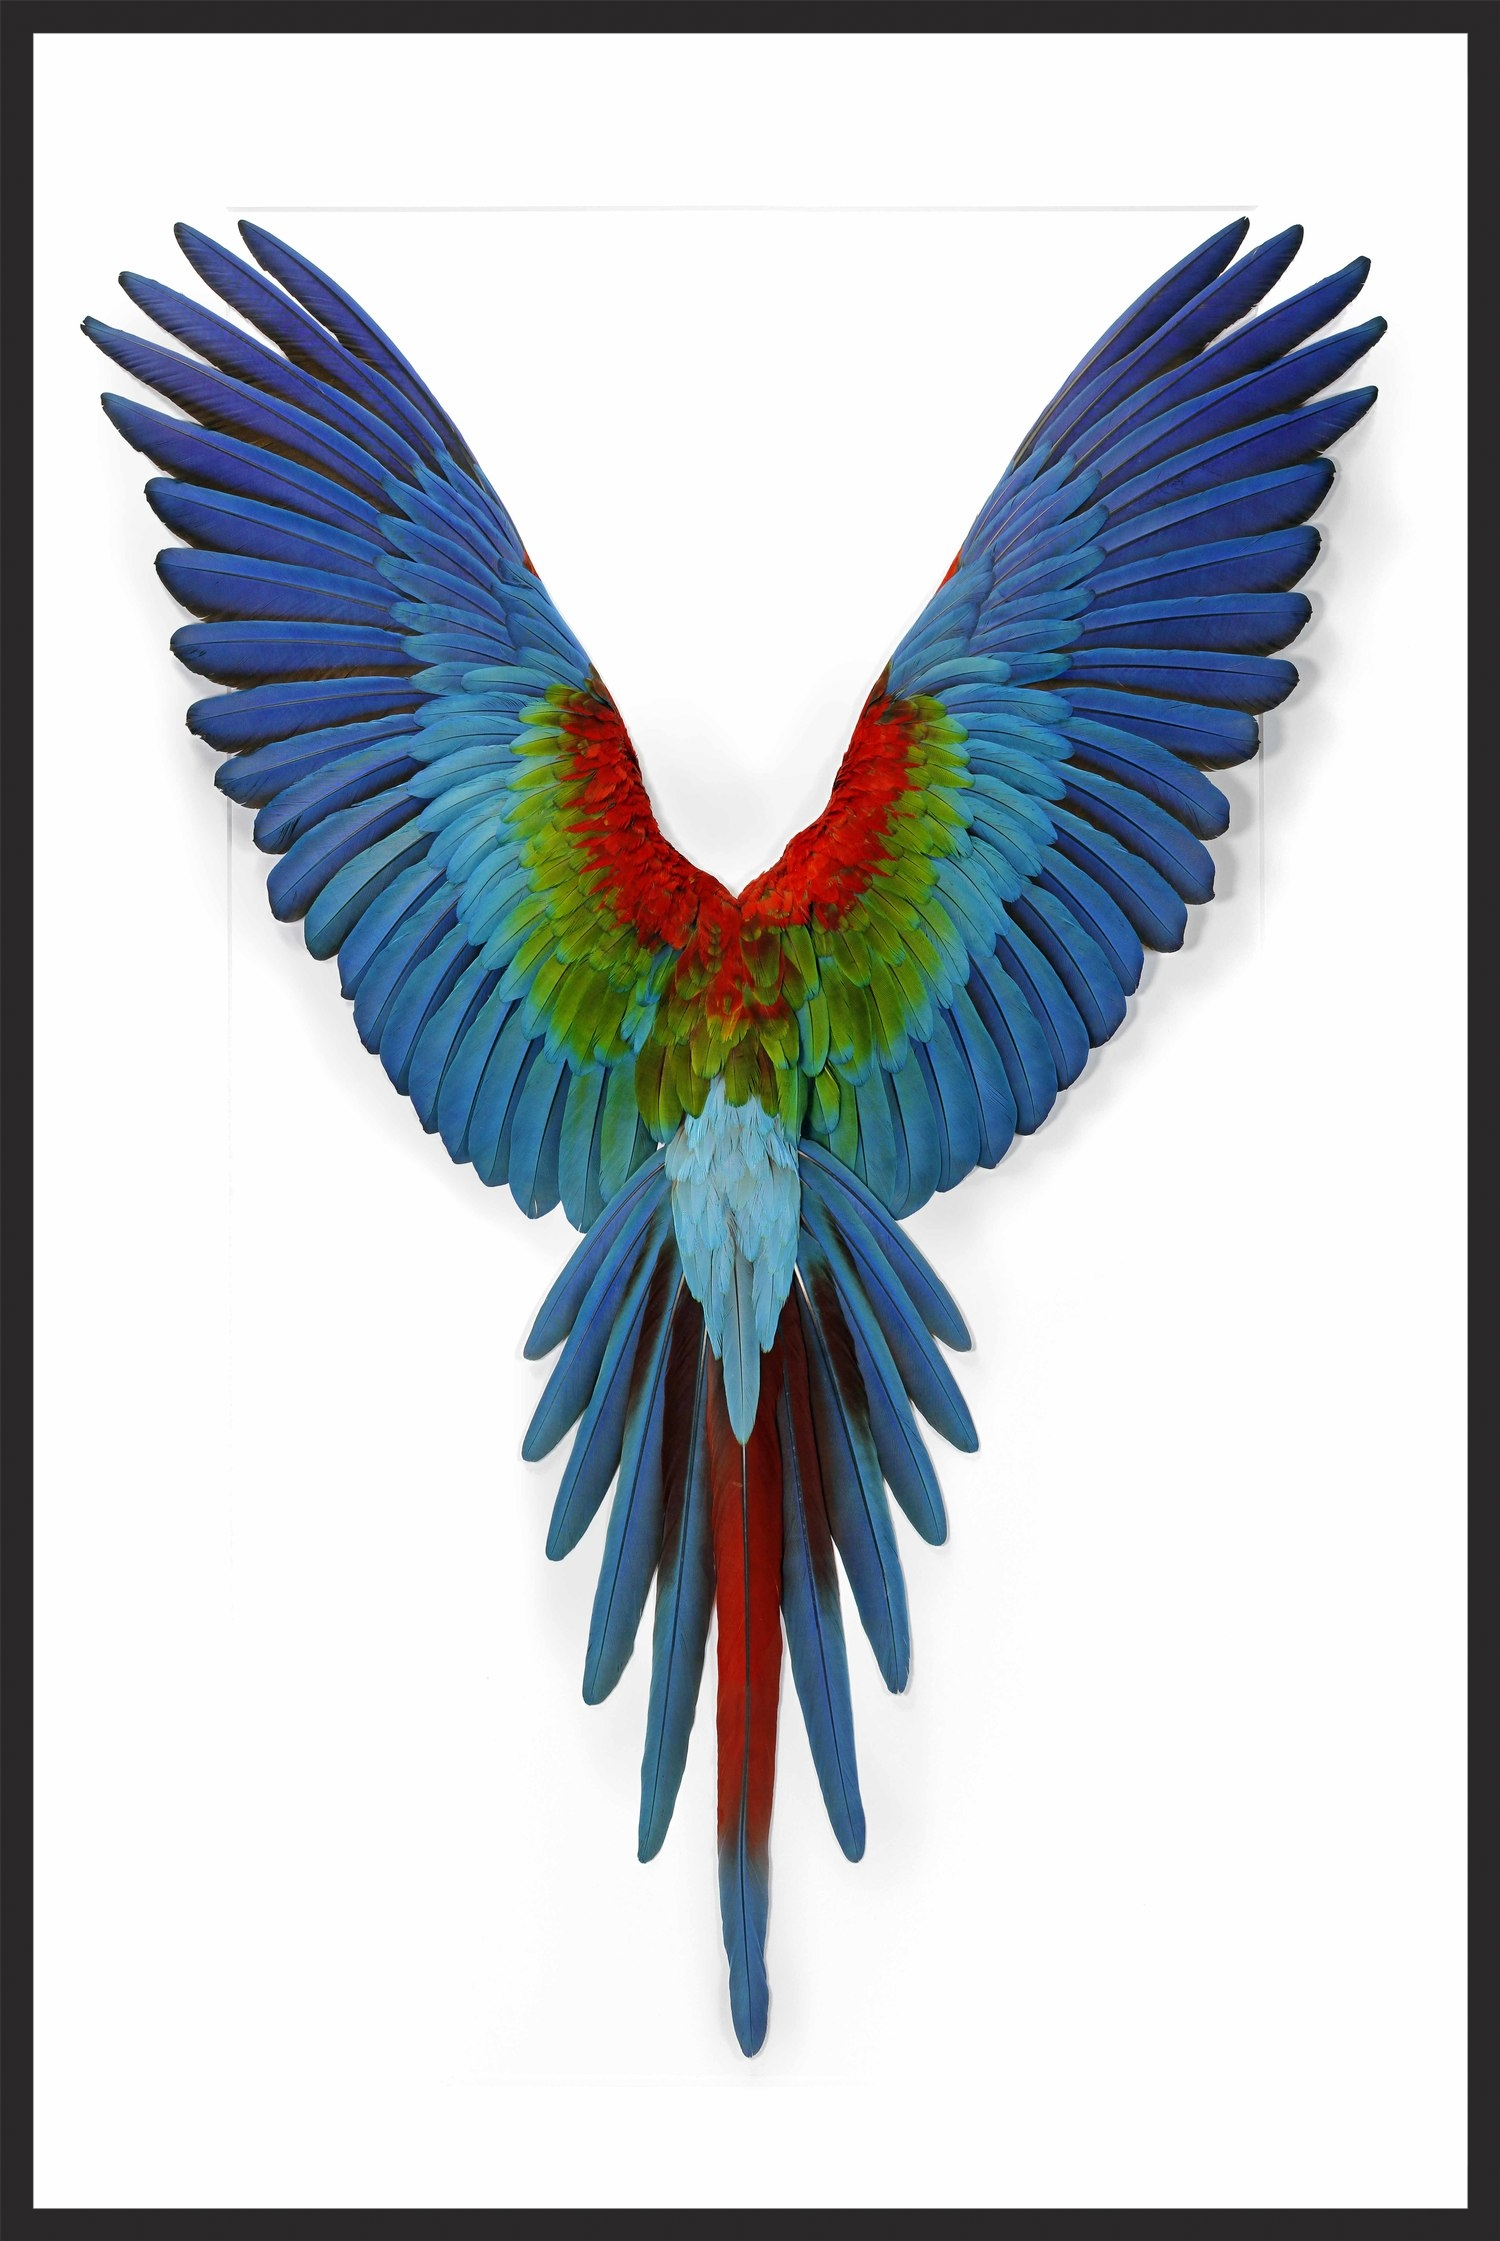 40x60 Greenwing Macaw.jpg